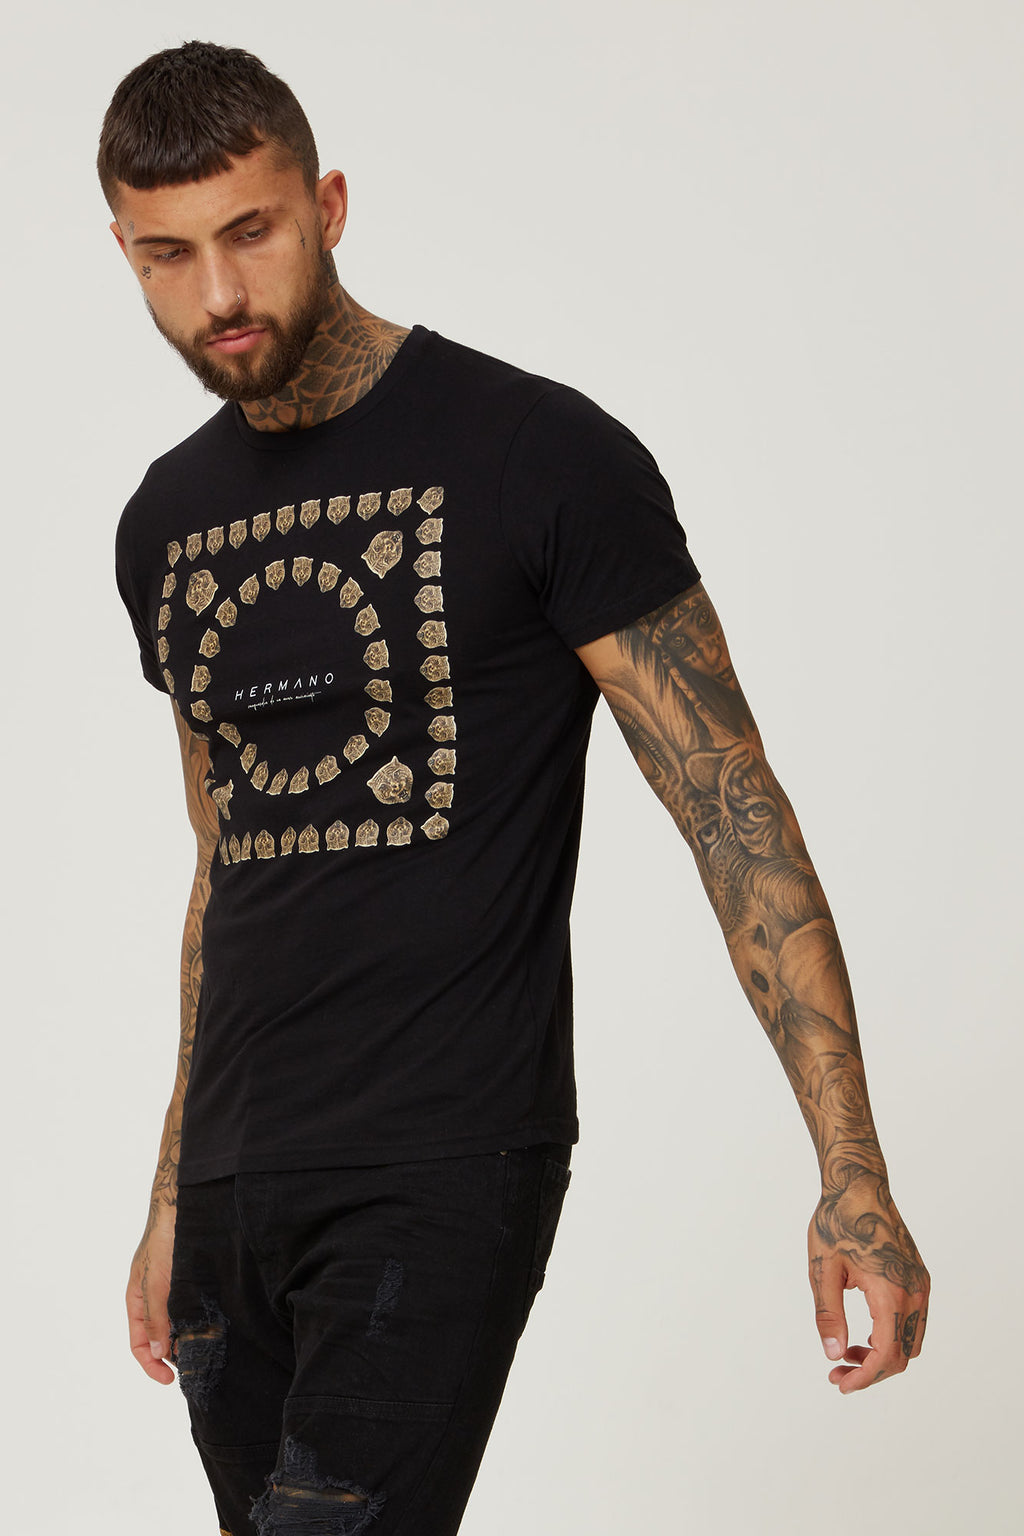 HERMANO BLACK TSHIRT TIGER DESIGN - H E R M A N O